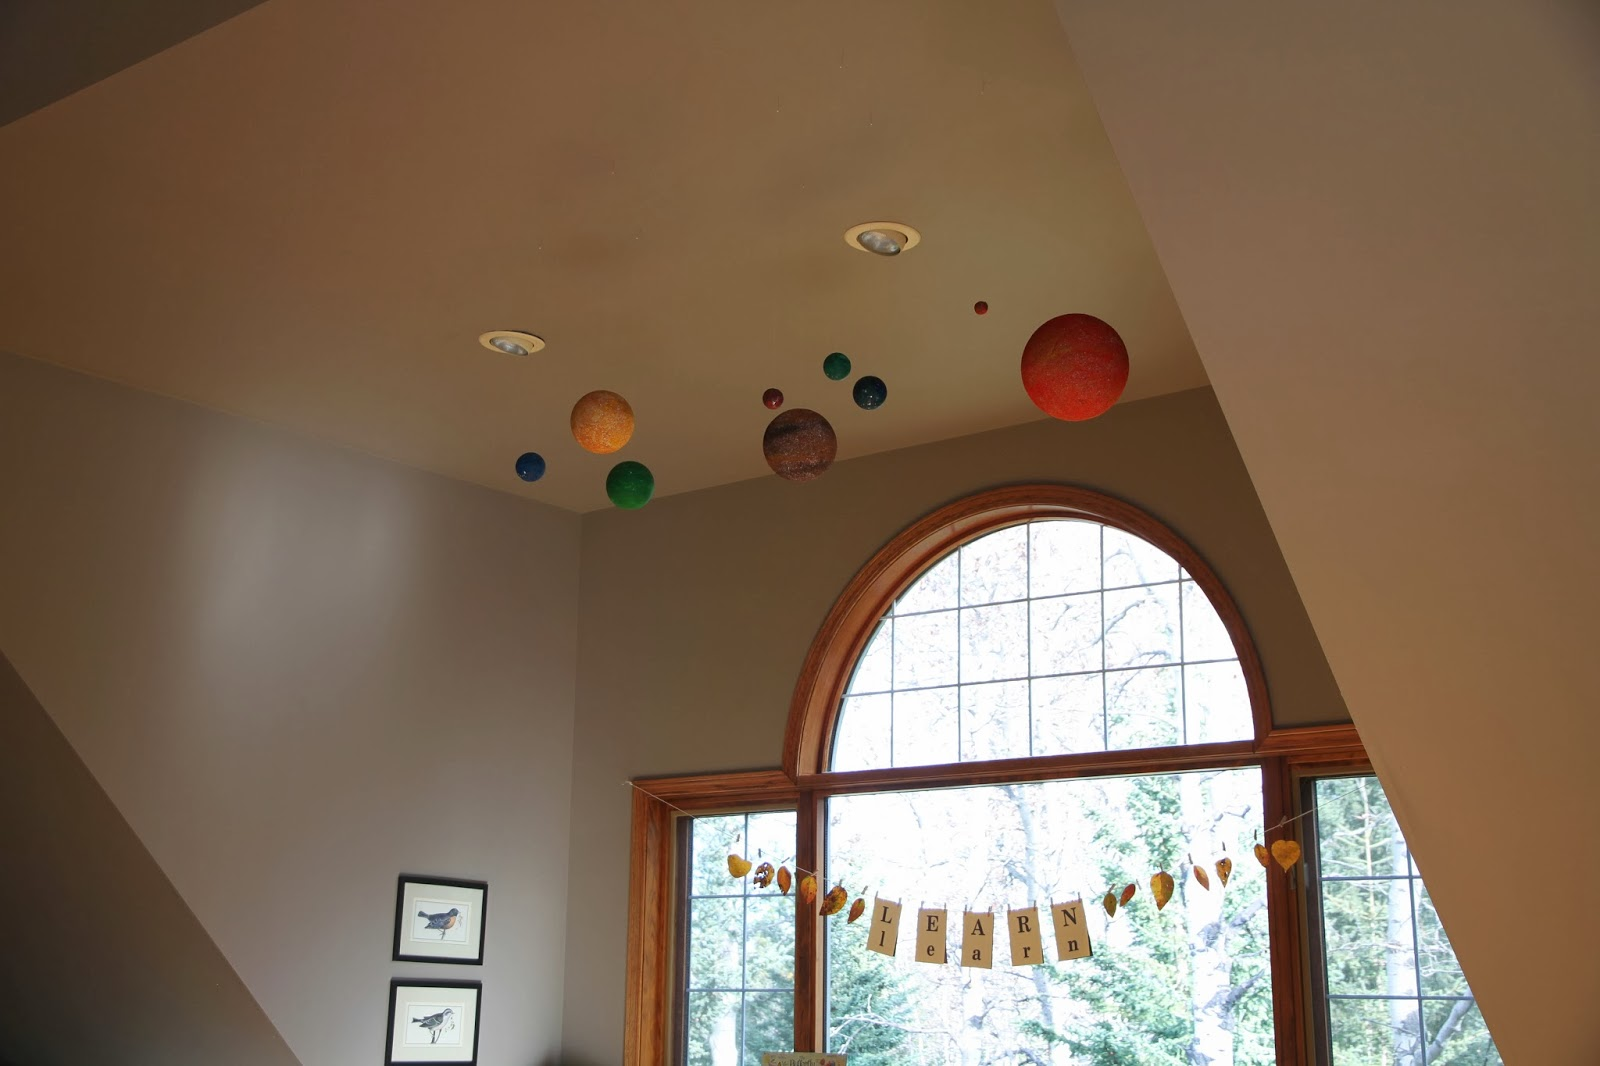 hang up solar system ceiling - photo #31